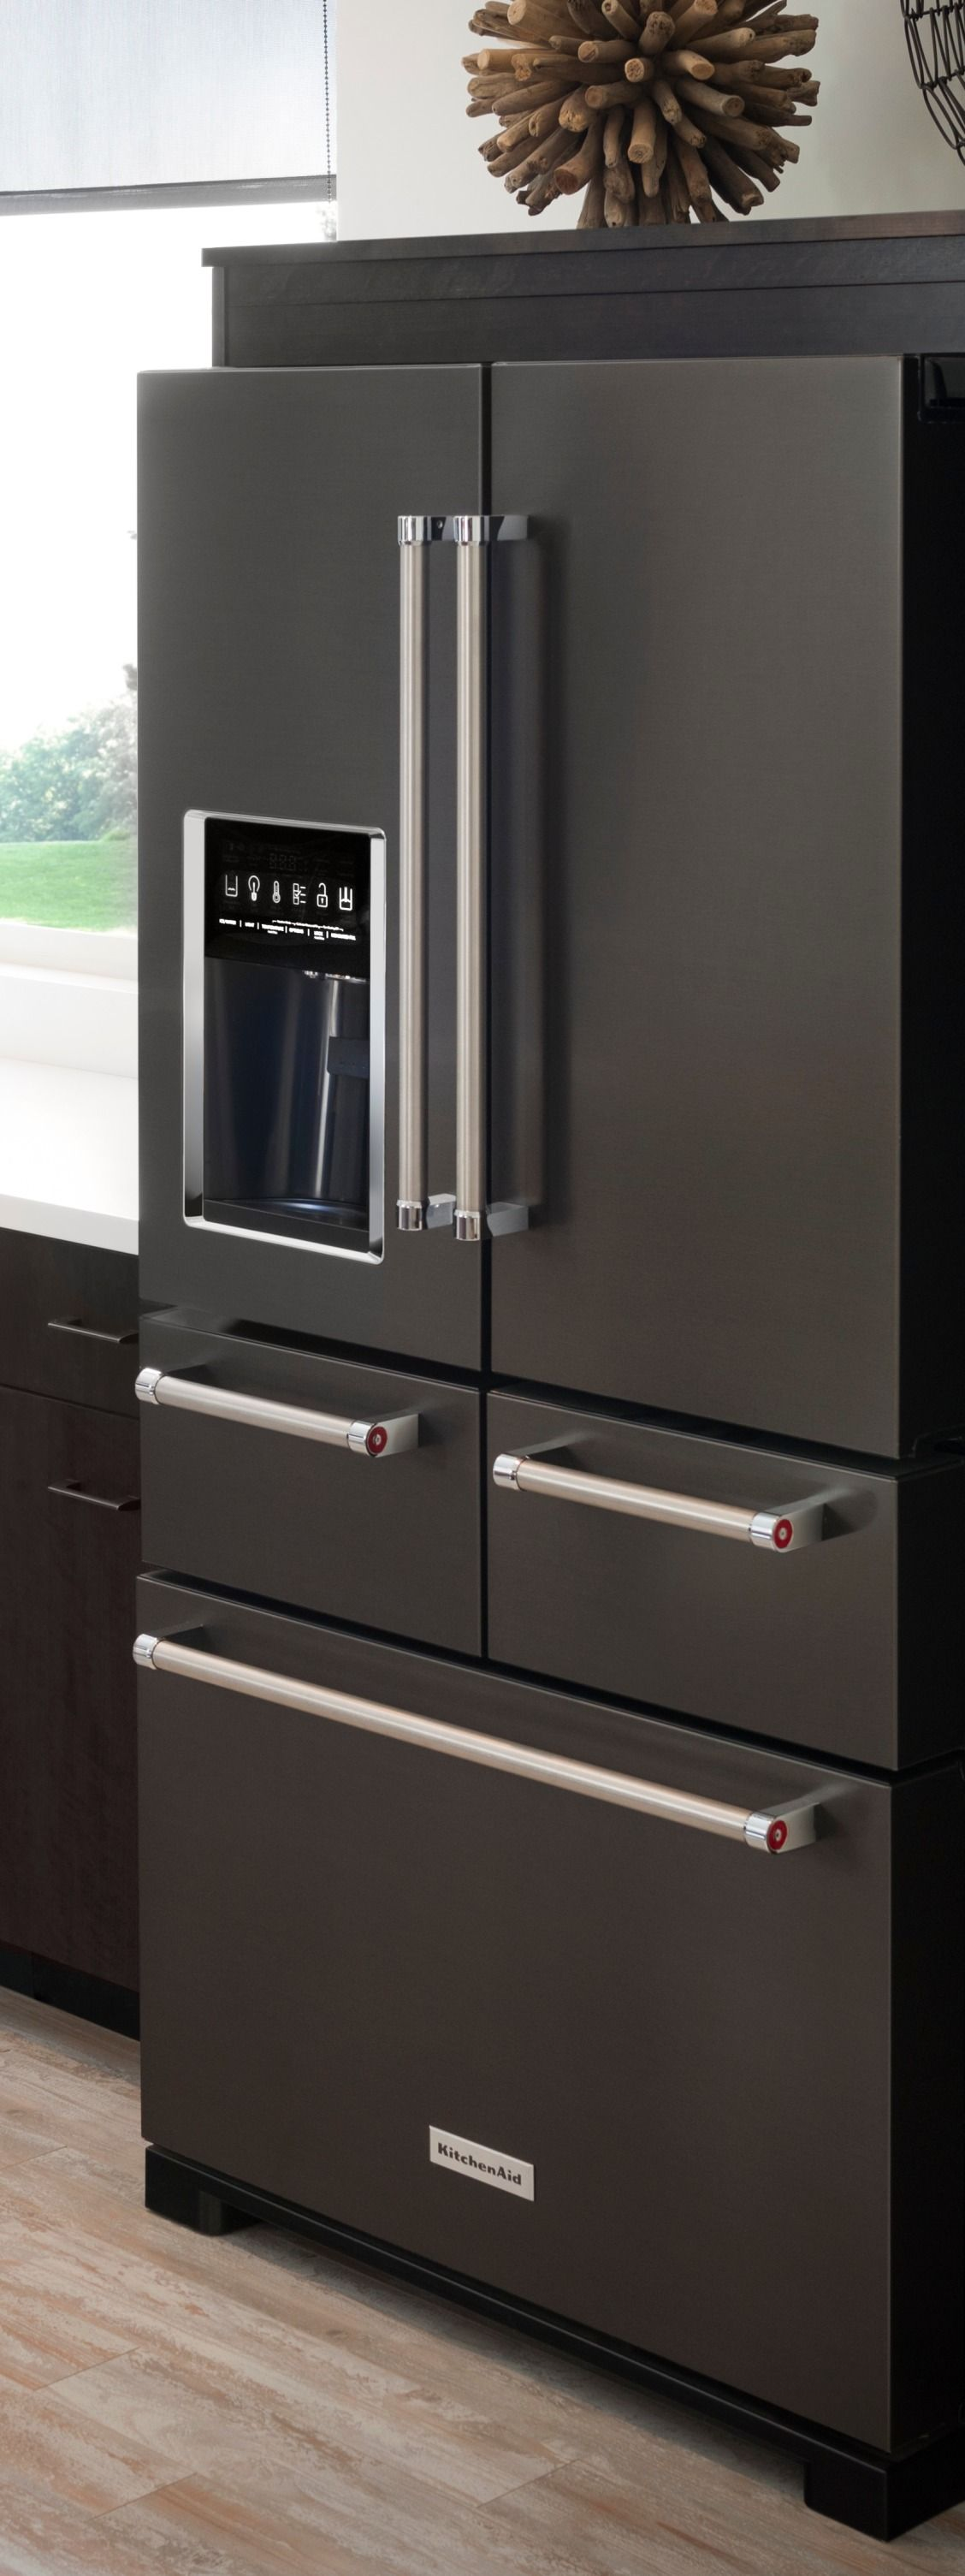 KitchenAidu0027s 5 Door Refrigerator Has The Cool Factor, Plus Its  Configuration Offers Simplified Food Storage And Access.